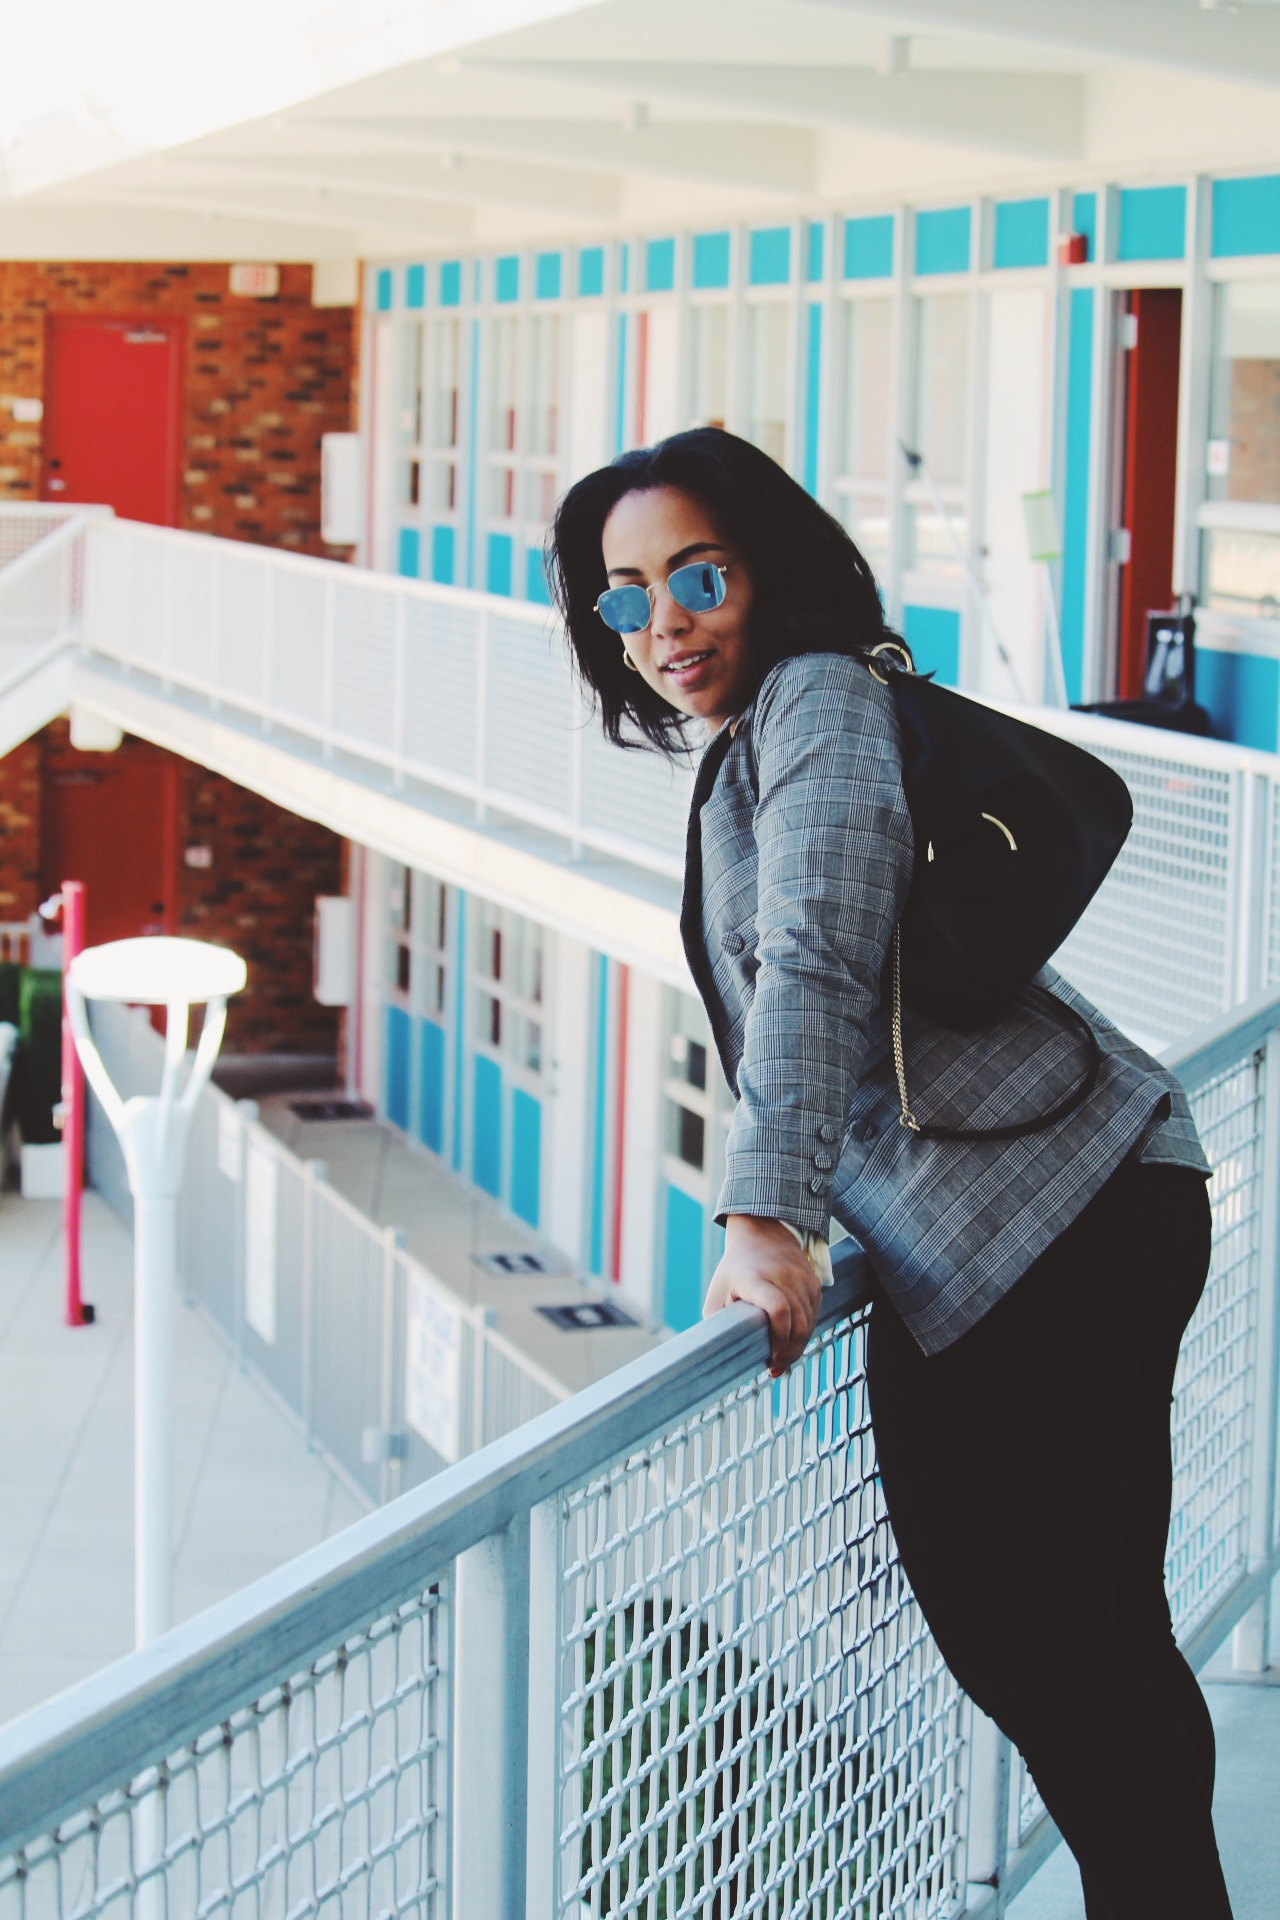 the-unscripted-hotel-durham-staycation-robinson-style-loves-travel-blogger-style-blogger-15.JPG